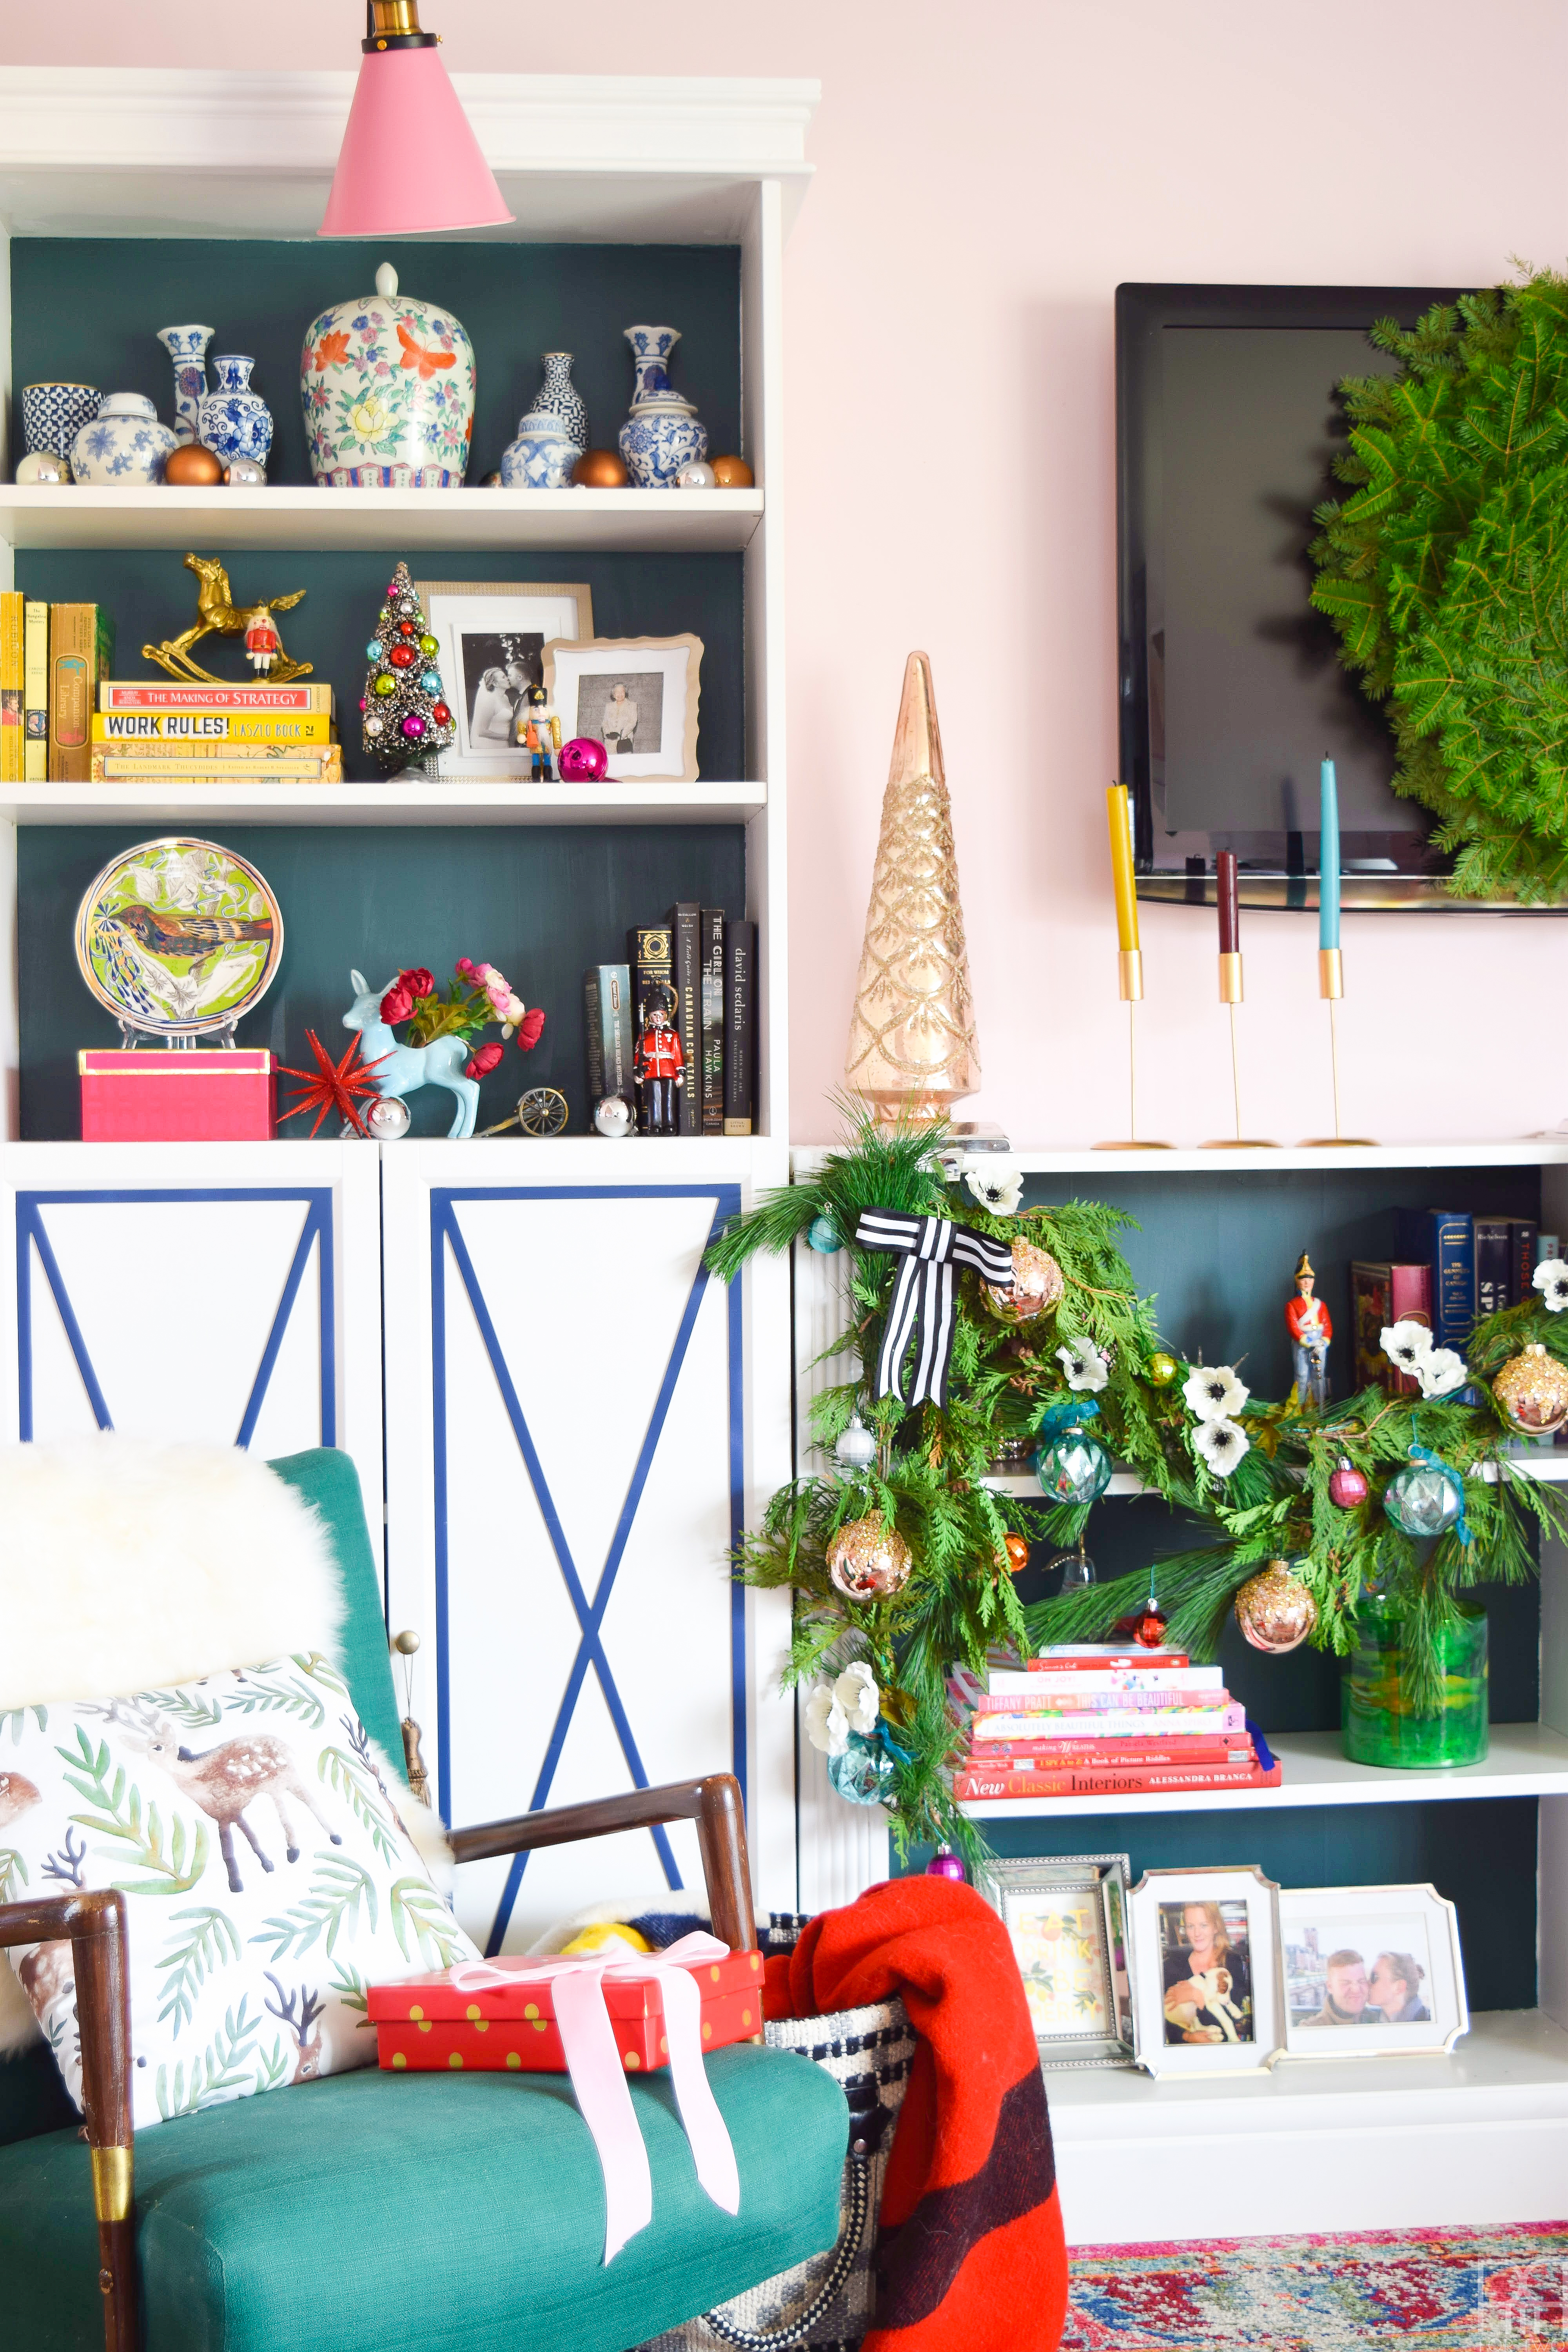 Creating a colourful & Eclectic Holiday Mantel is as easy with fresh greenery, florals and colourful baubles.